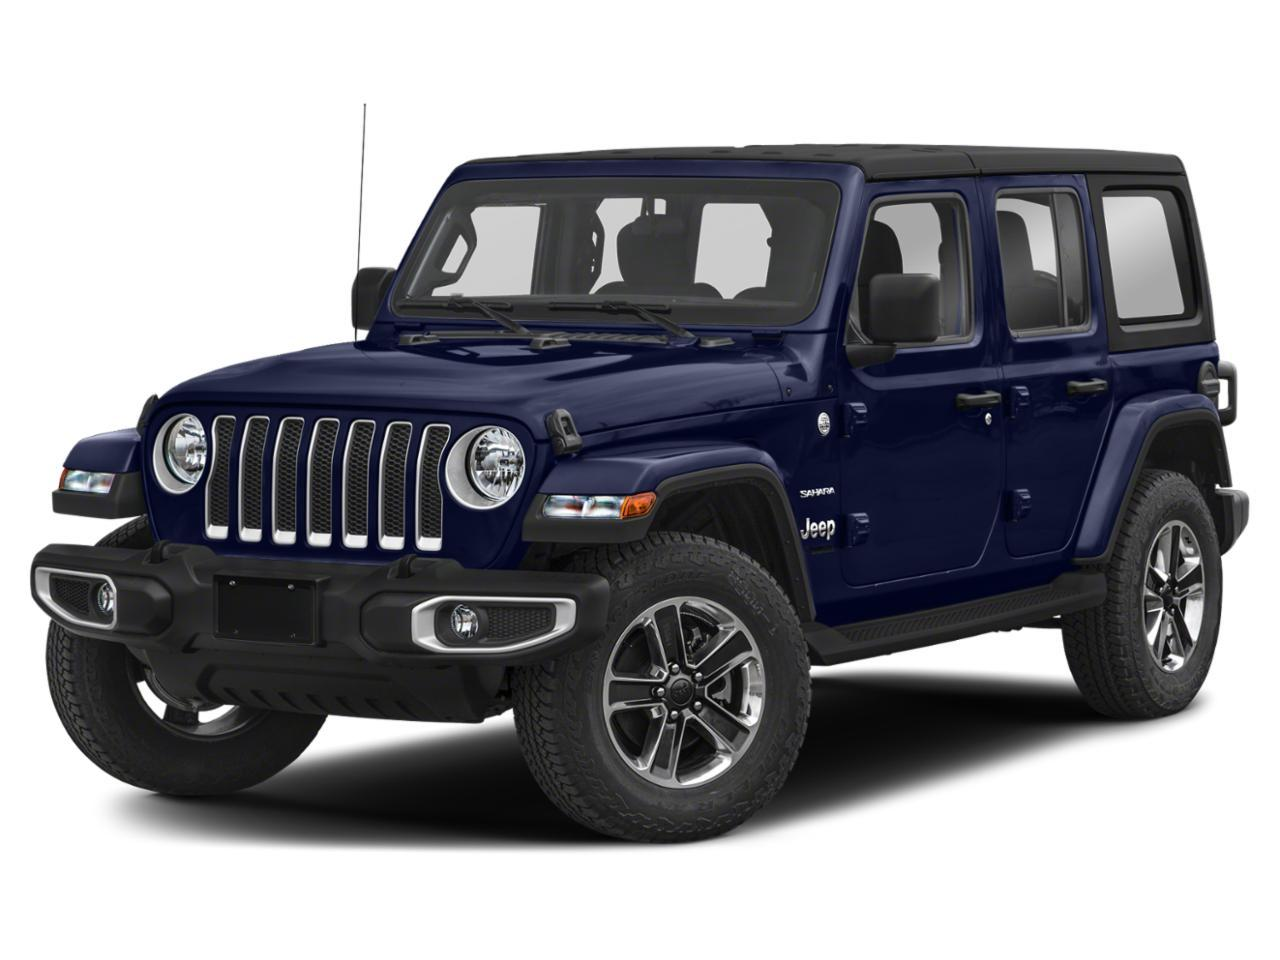 2018 Jeep Wrangler Unlimited Vehicle Photo in West Chester, PA 19382